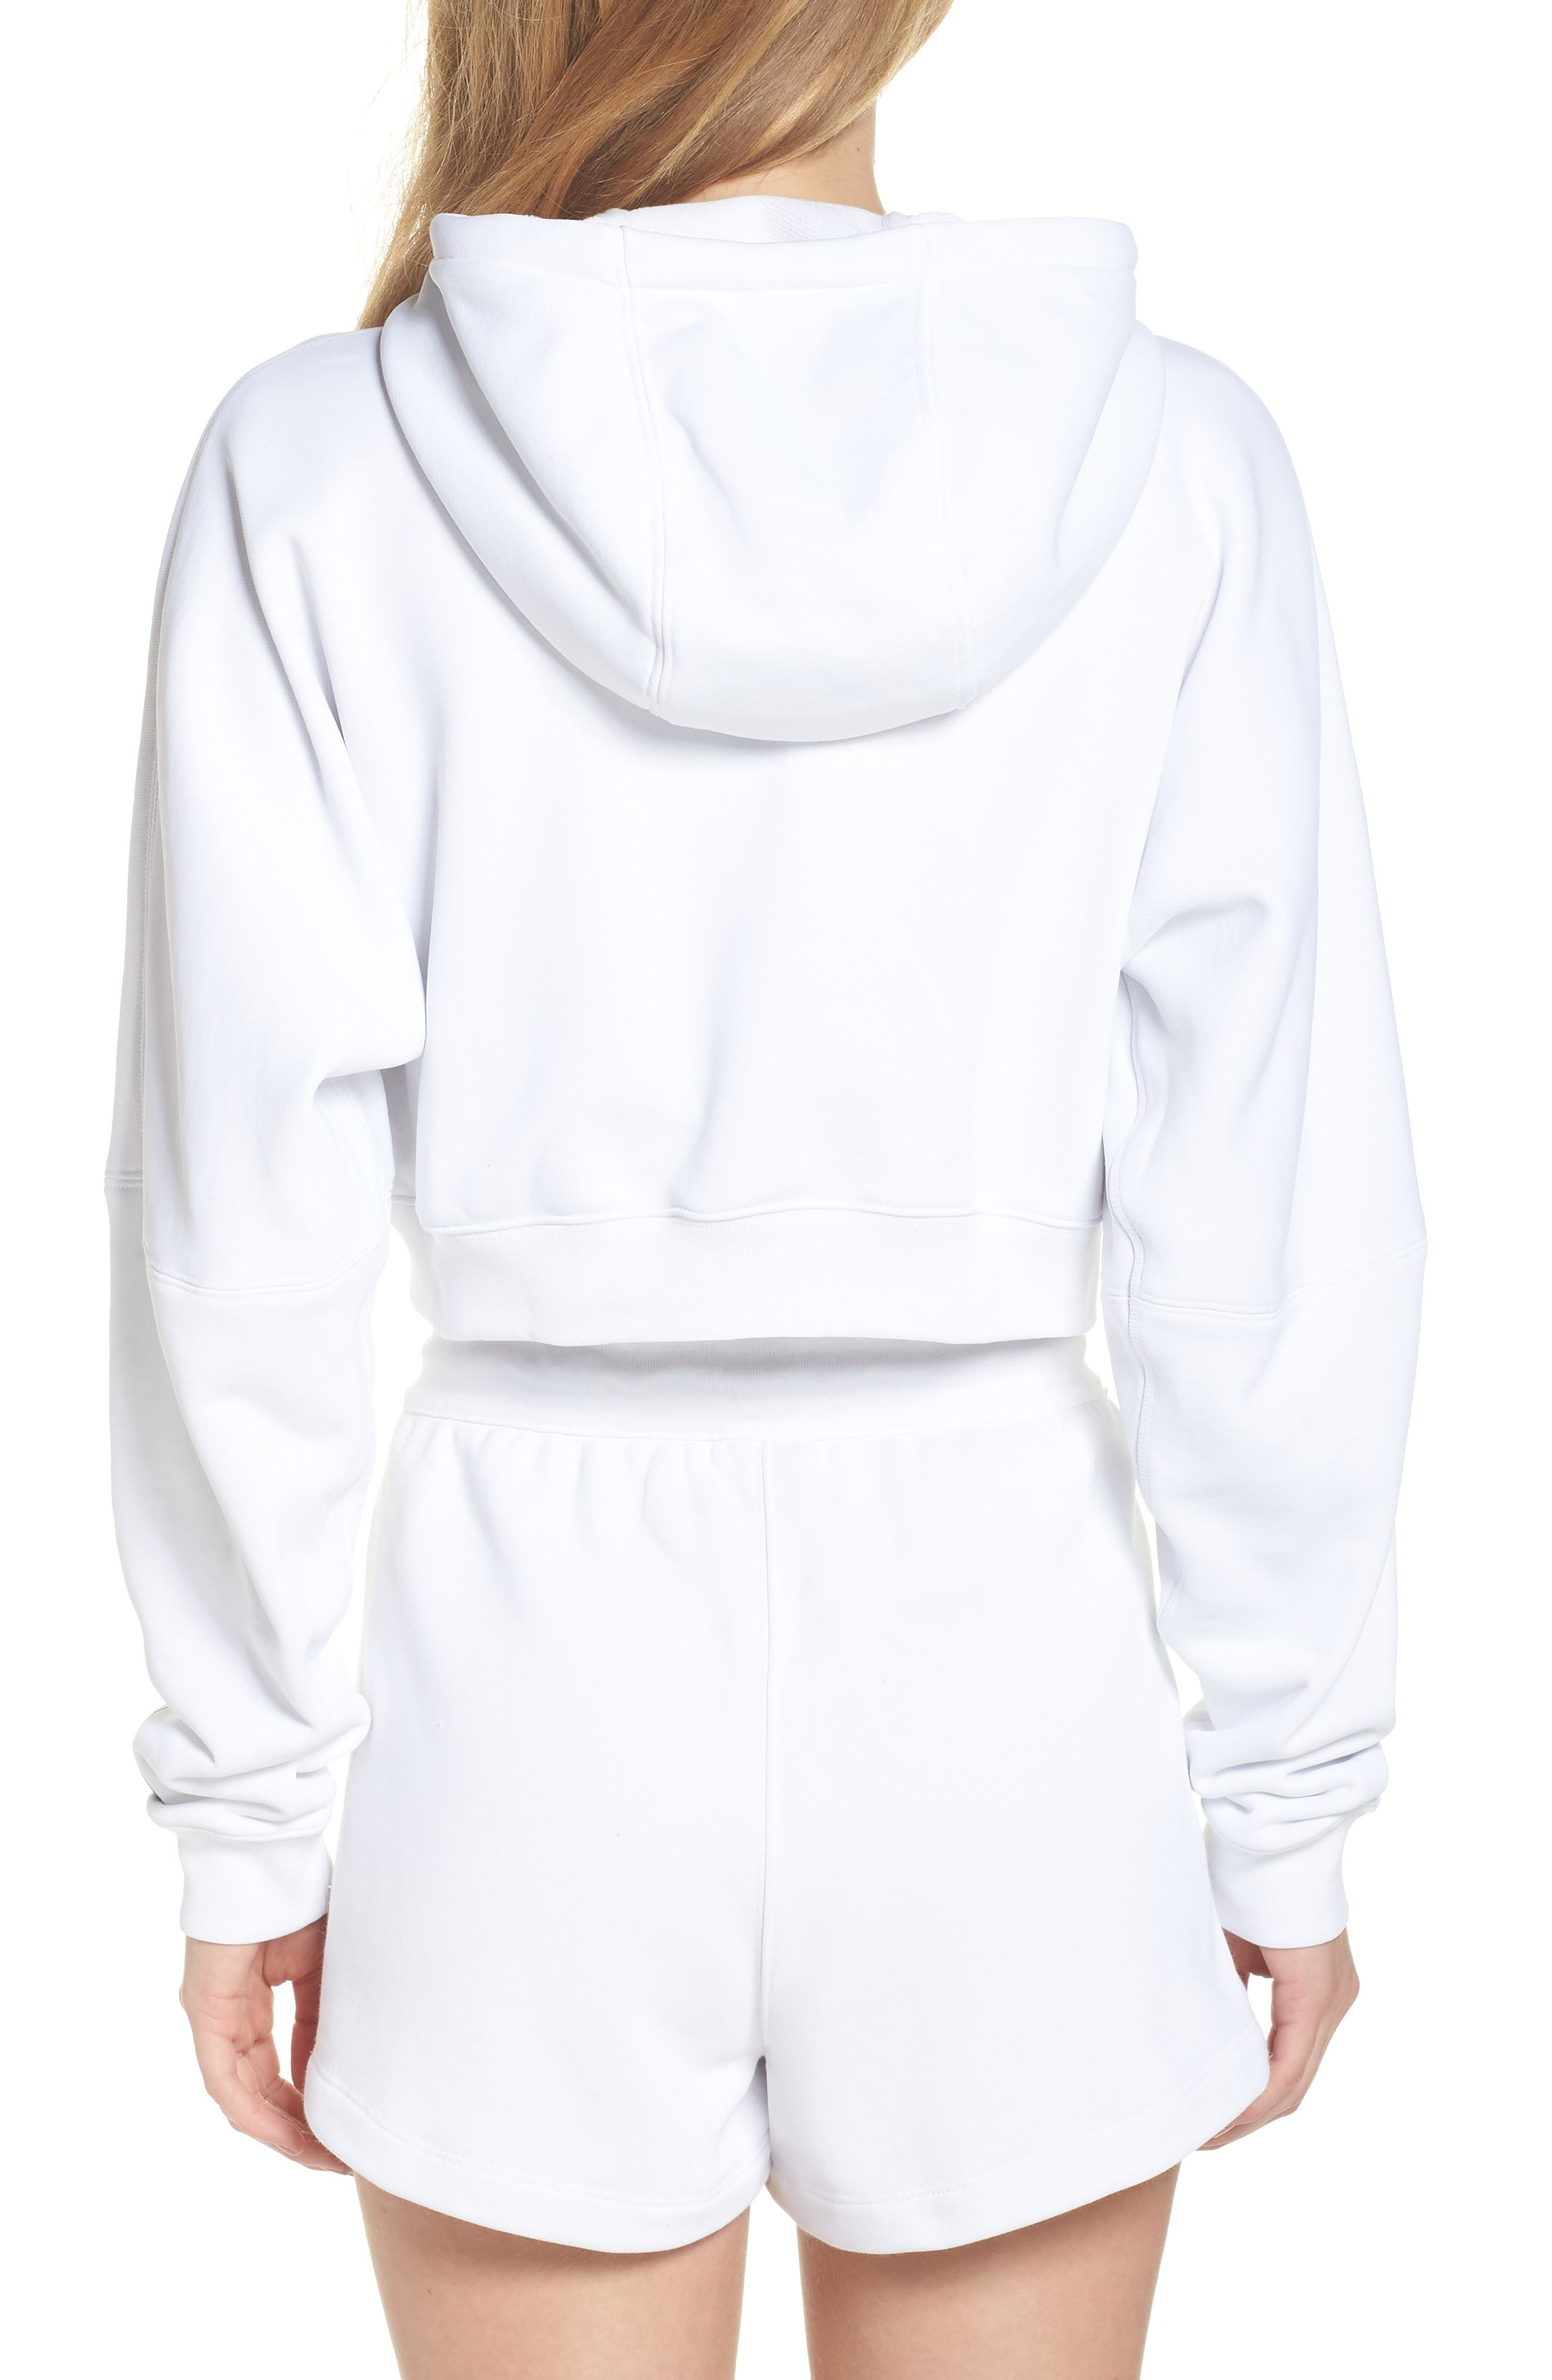 NikeLab Collection Terry Zip Hoodie,                             Alternate thumbnail 2, color,                             100